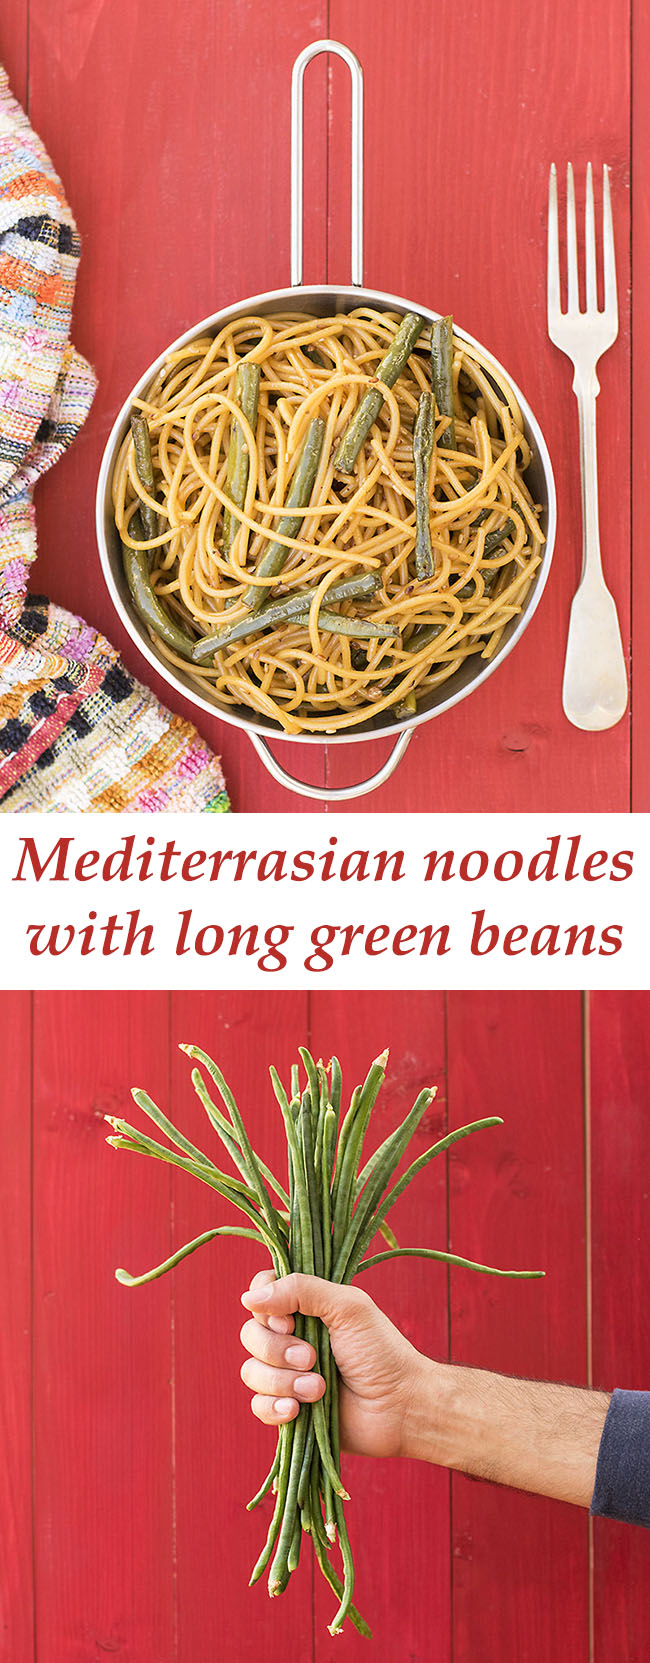 Mediterrasian noodles with long green beans